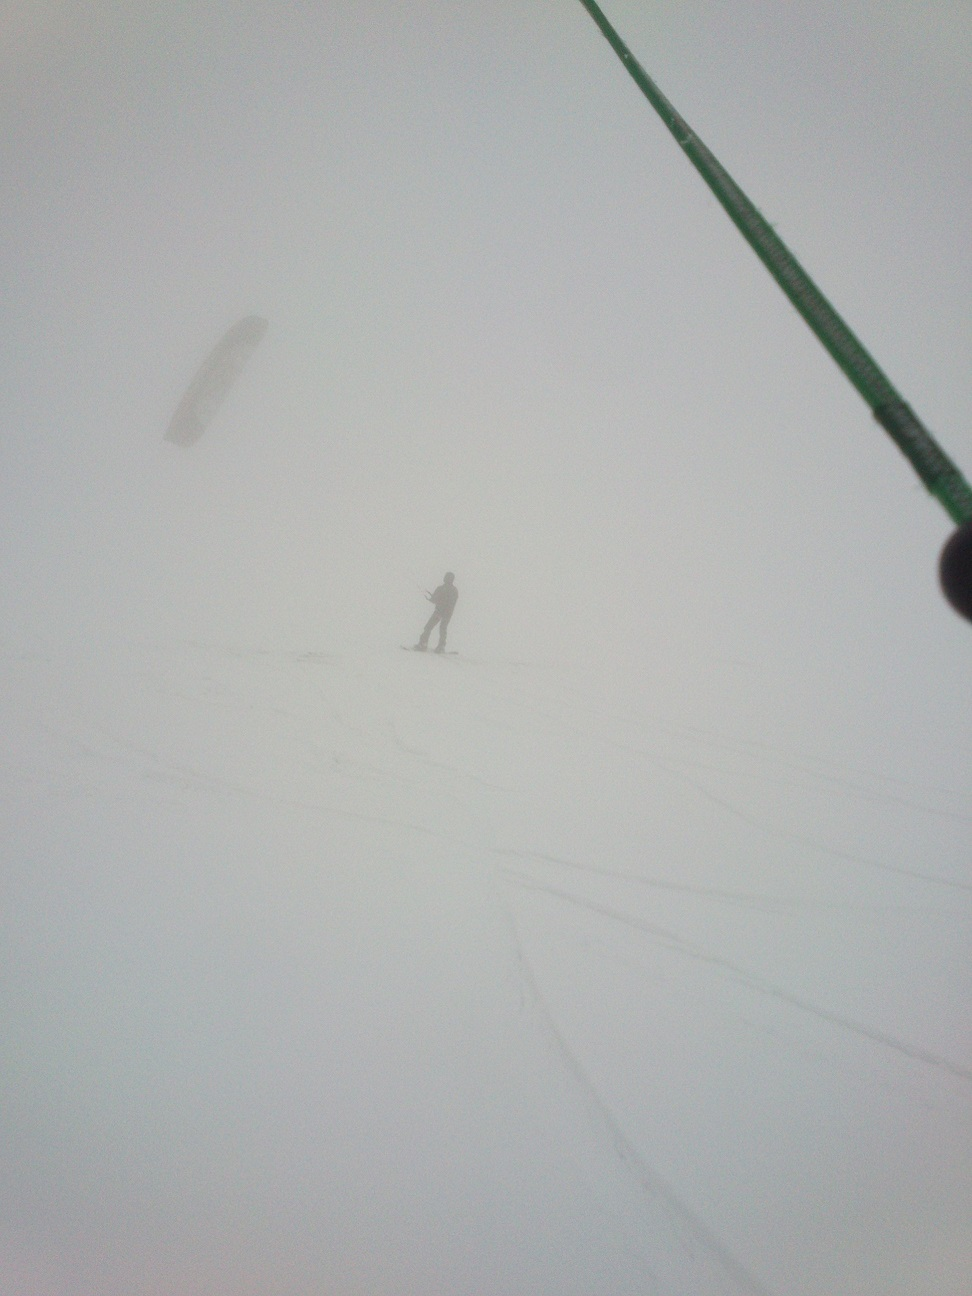 21 Avril - Double session: Estables (Snow) + Naussac (Water) 06